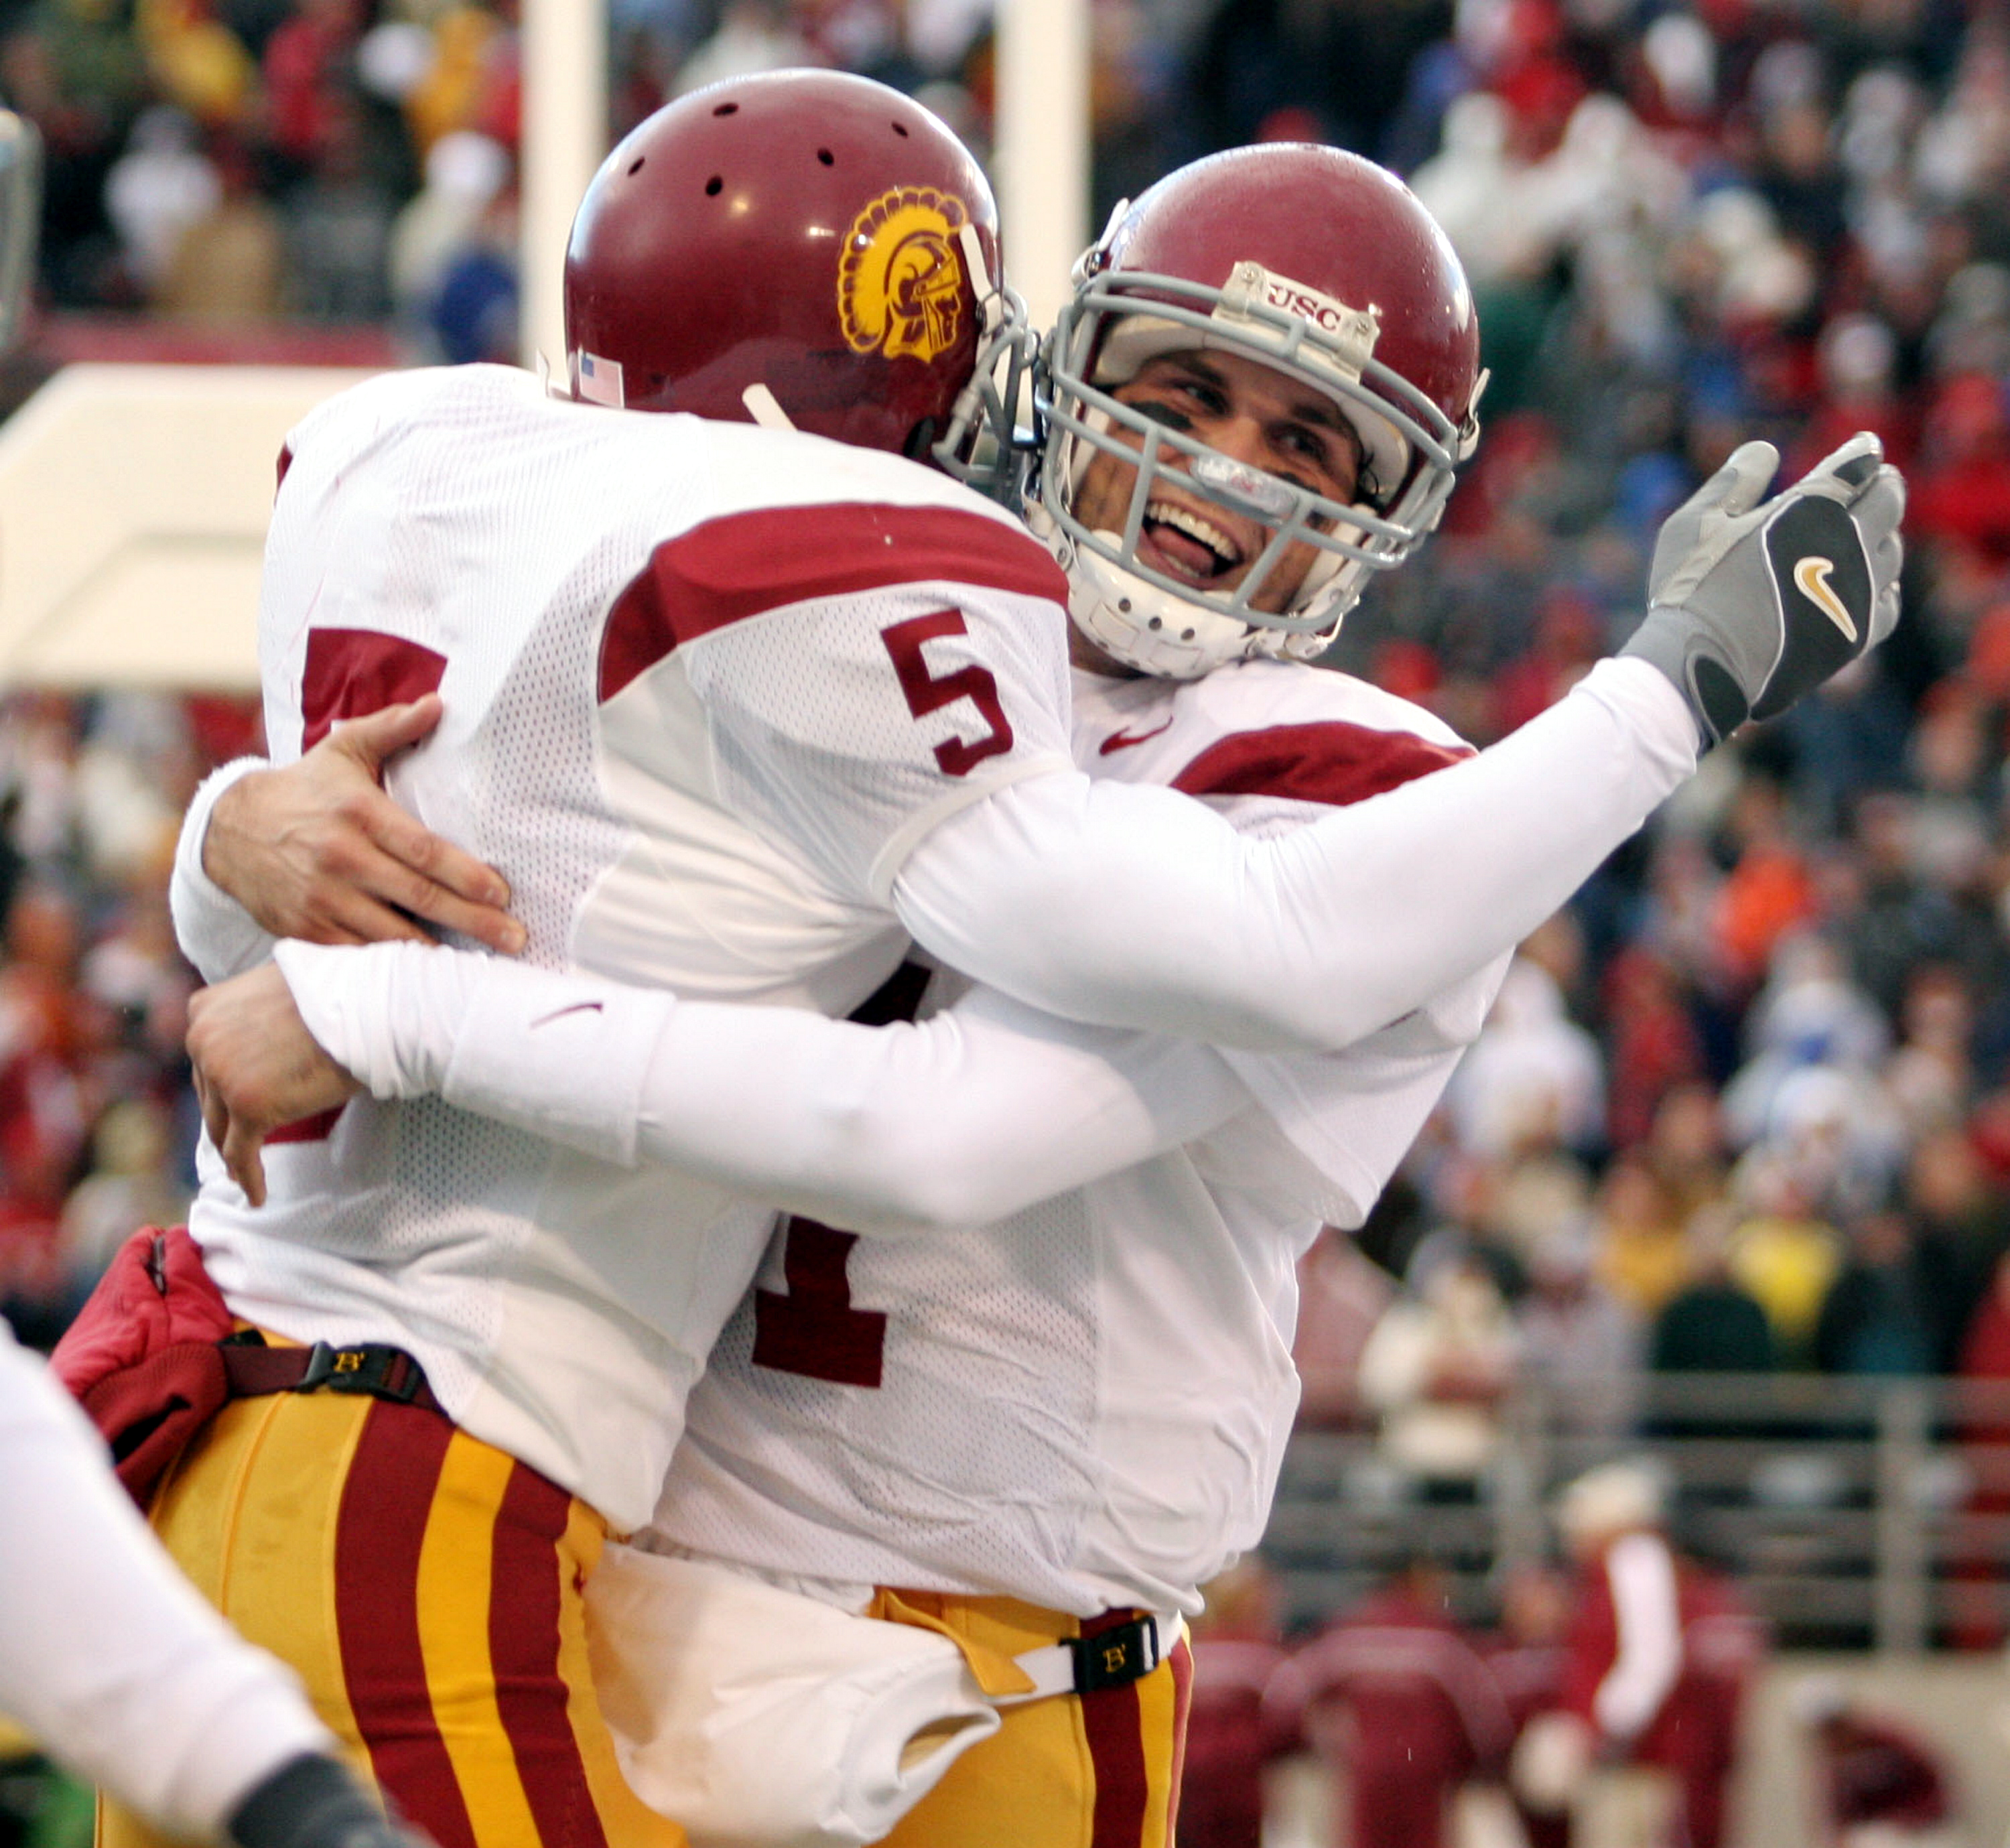 PULLMAN, WA - OCTOBER 30:  Running back Reggie Bush #5 of the USC Trojans celebrates with quarterback Matt Leinart #11 after scoring a touchdown against the Washington State Cougars on October 30, 2004 at Martin Stadium in Pullman, Washington.  (Photo by